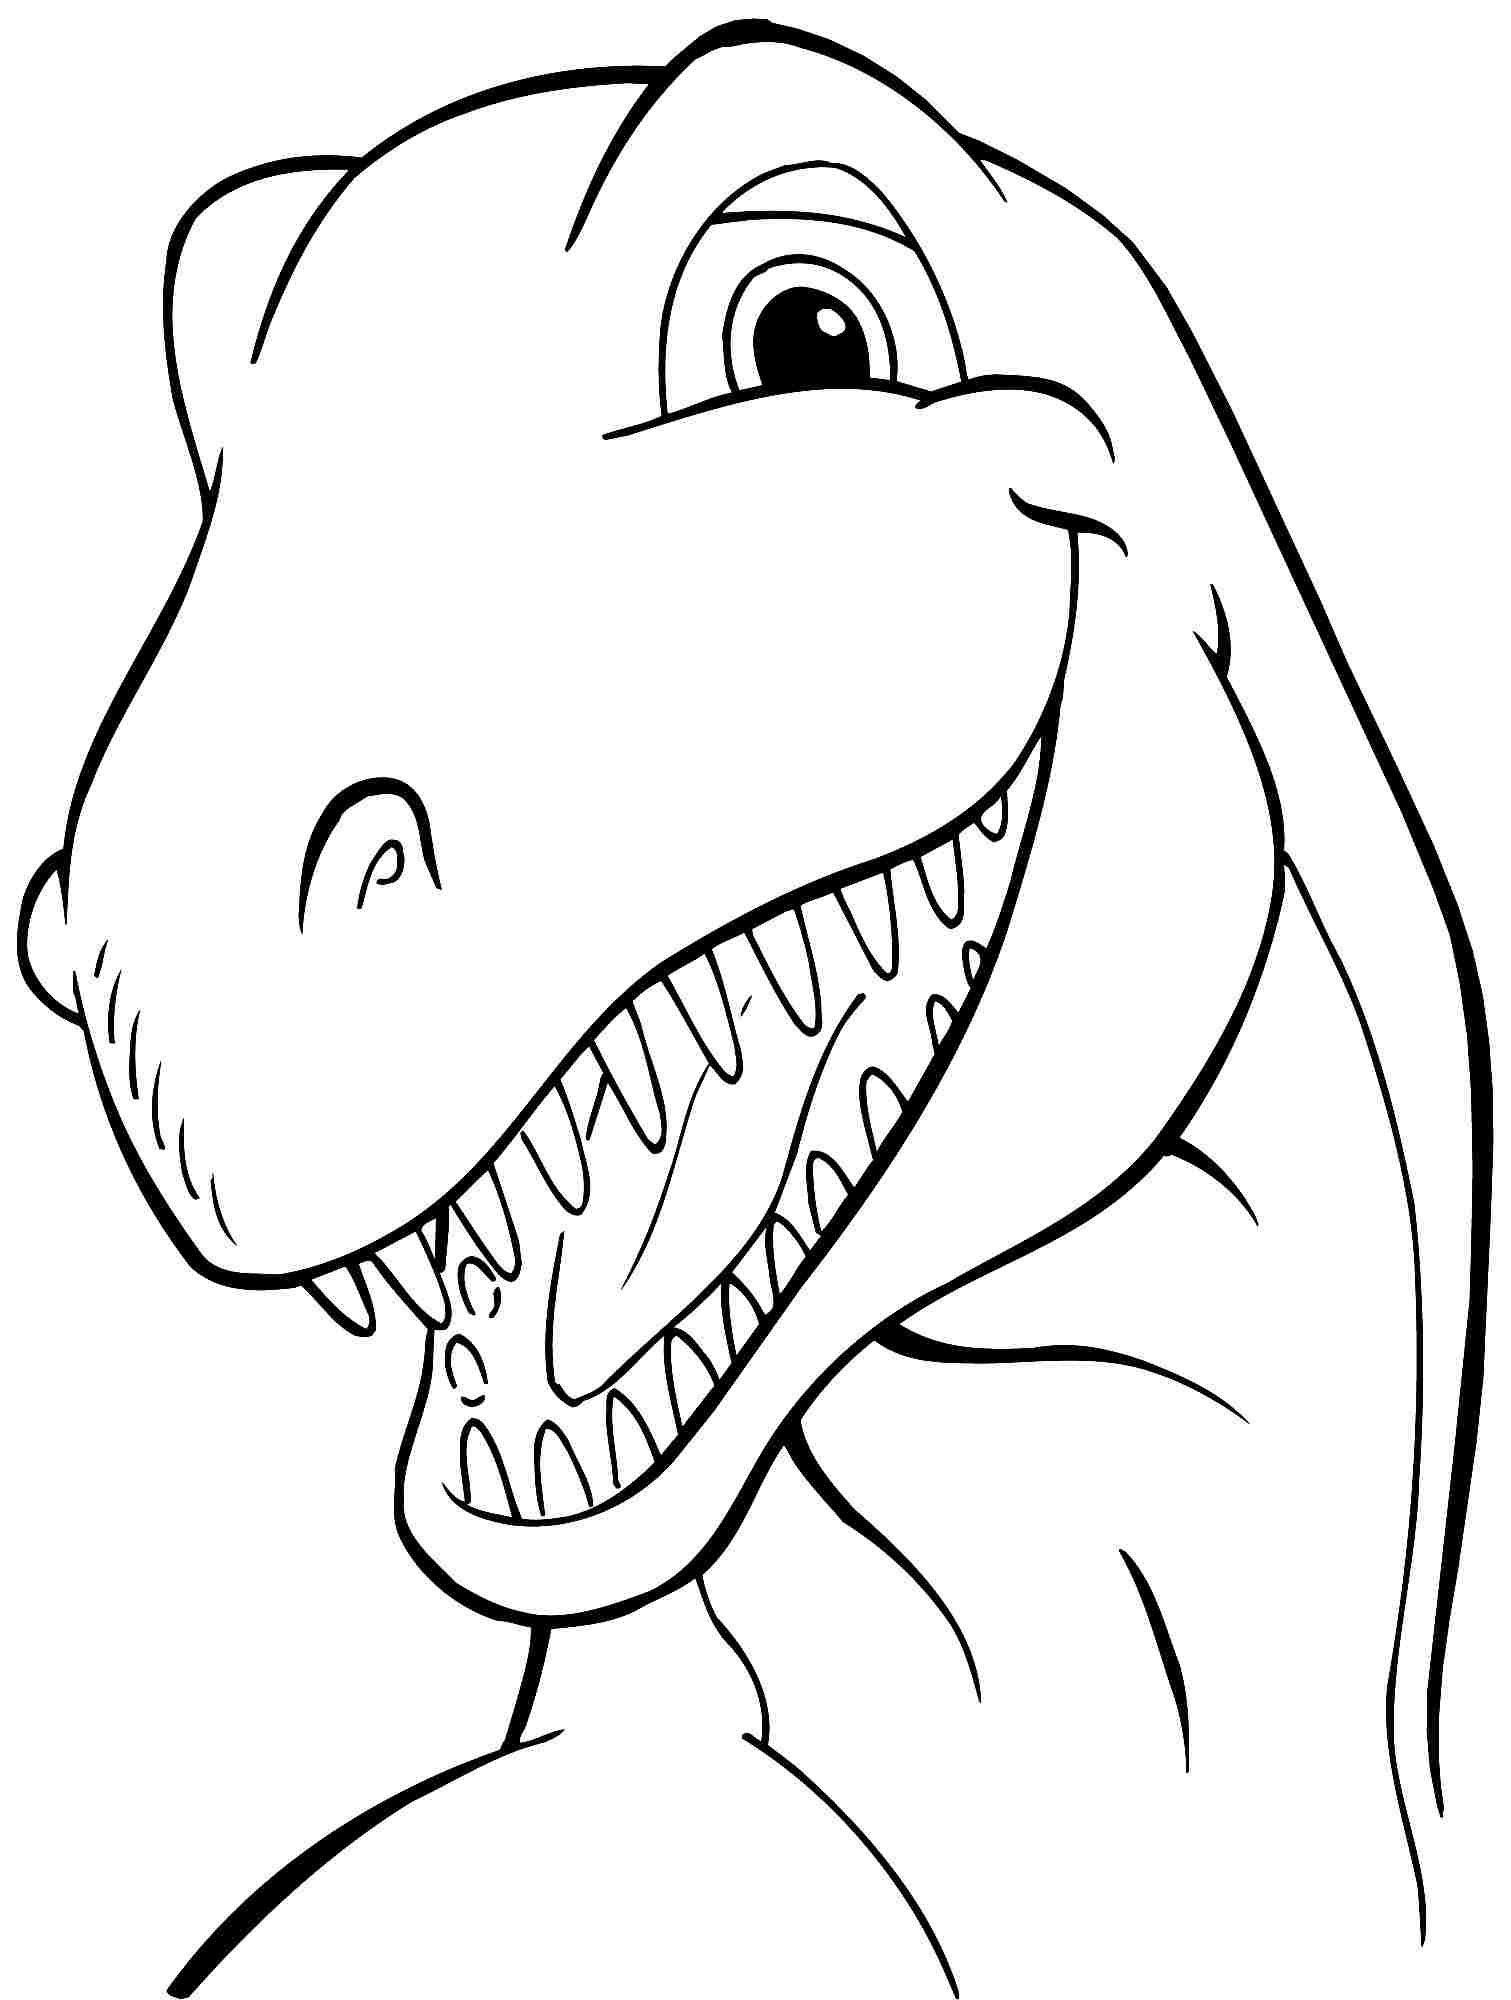 T Rex Coloring Pages Animal Dinosaurs Tyrannosaurus Rex Coloring Sheets Free In 2020 Dinosaur Coloring Pages Dinosaur Coloring Sheets Dinosaur Coloring